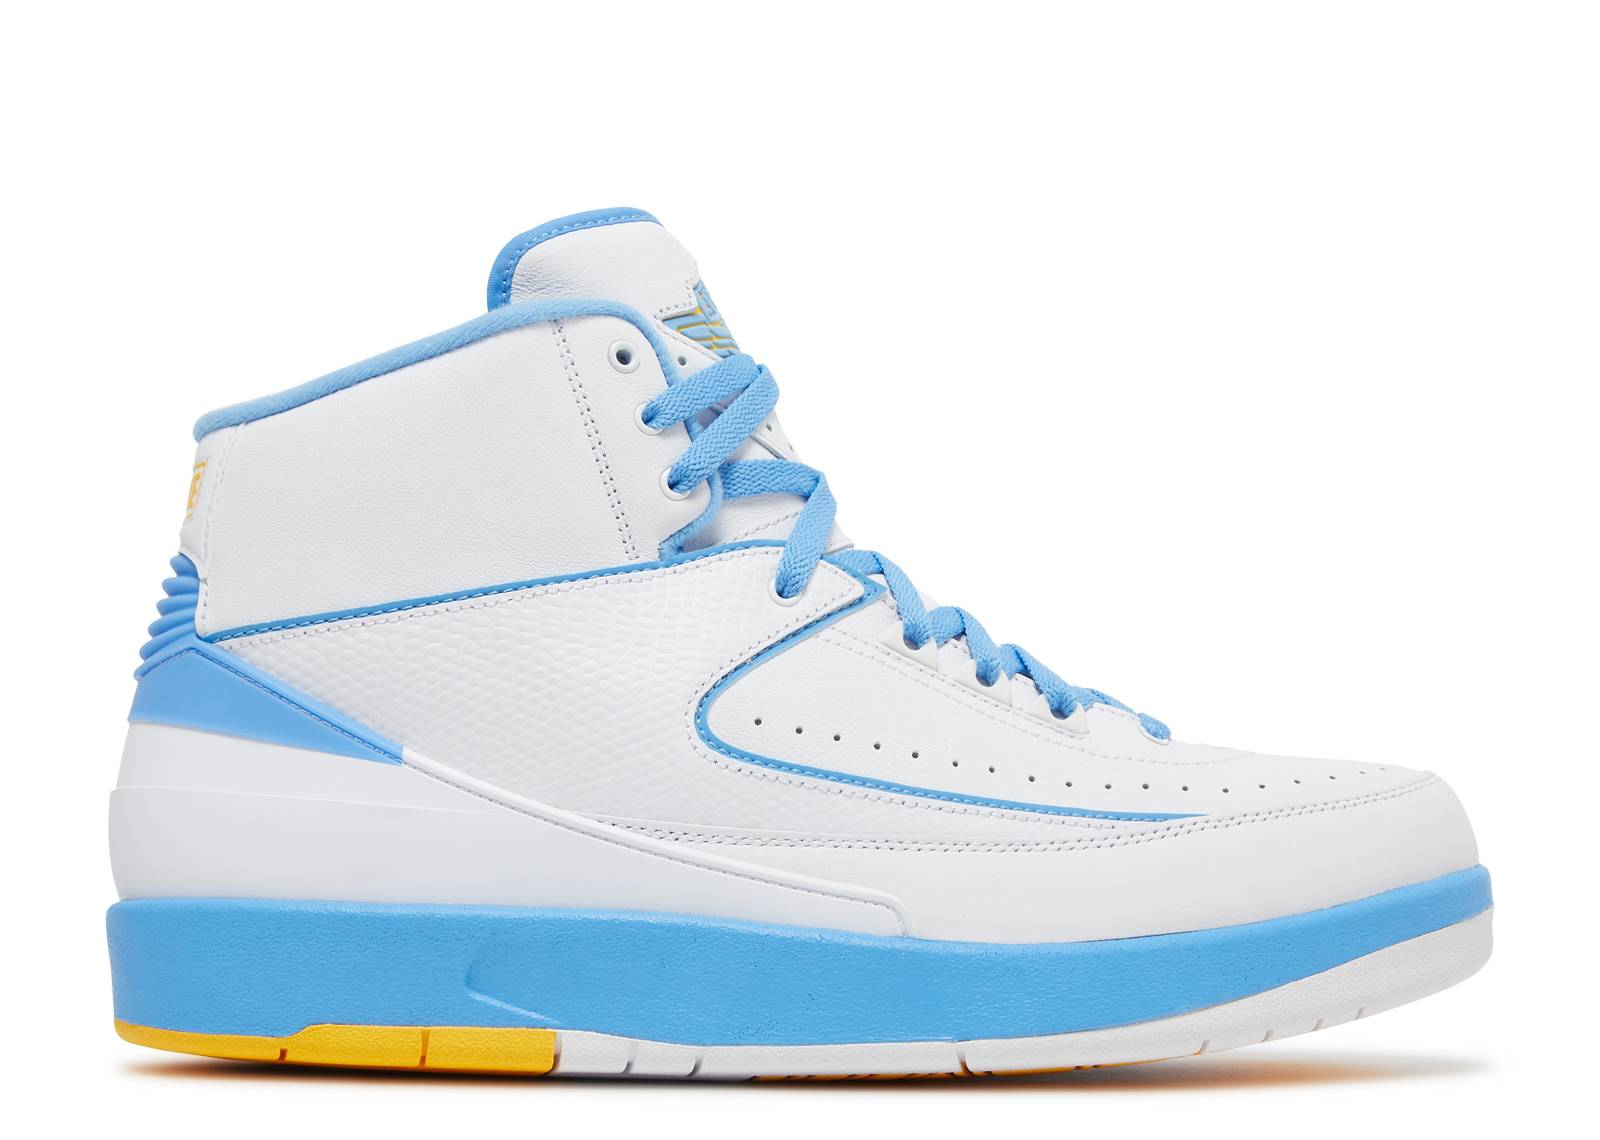 Jordan Men Air Jordan 2 Retro Low (14 US, white university blue)